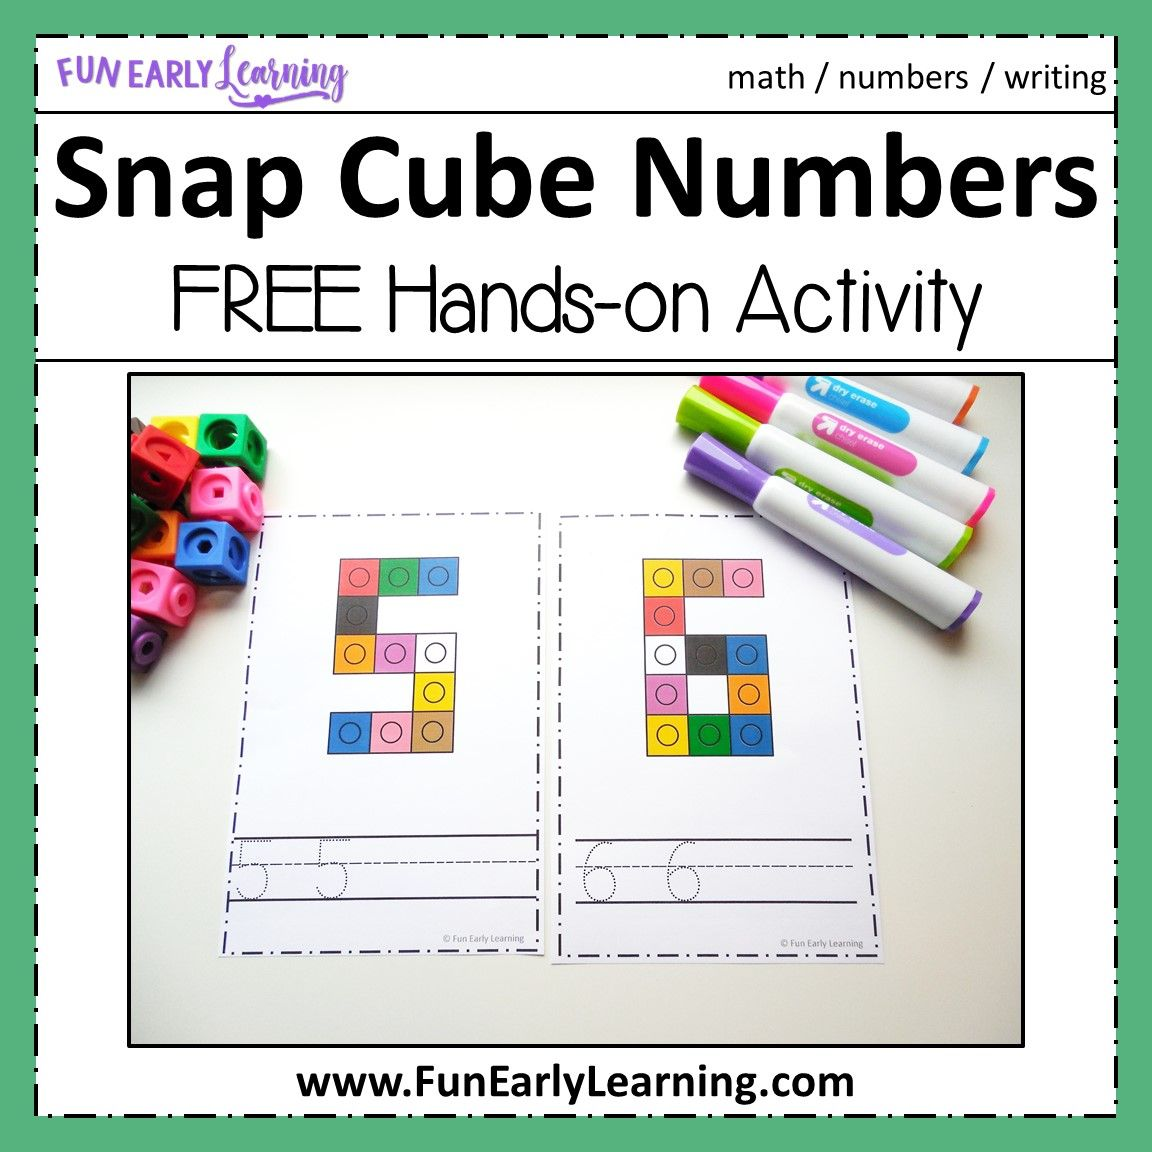 Snap Cube Numbers